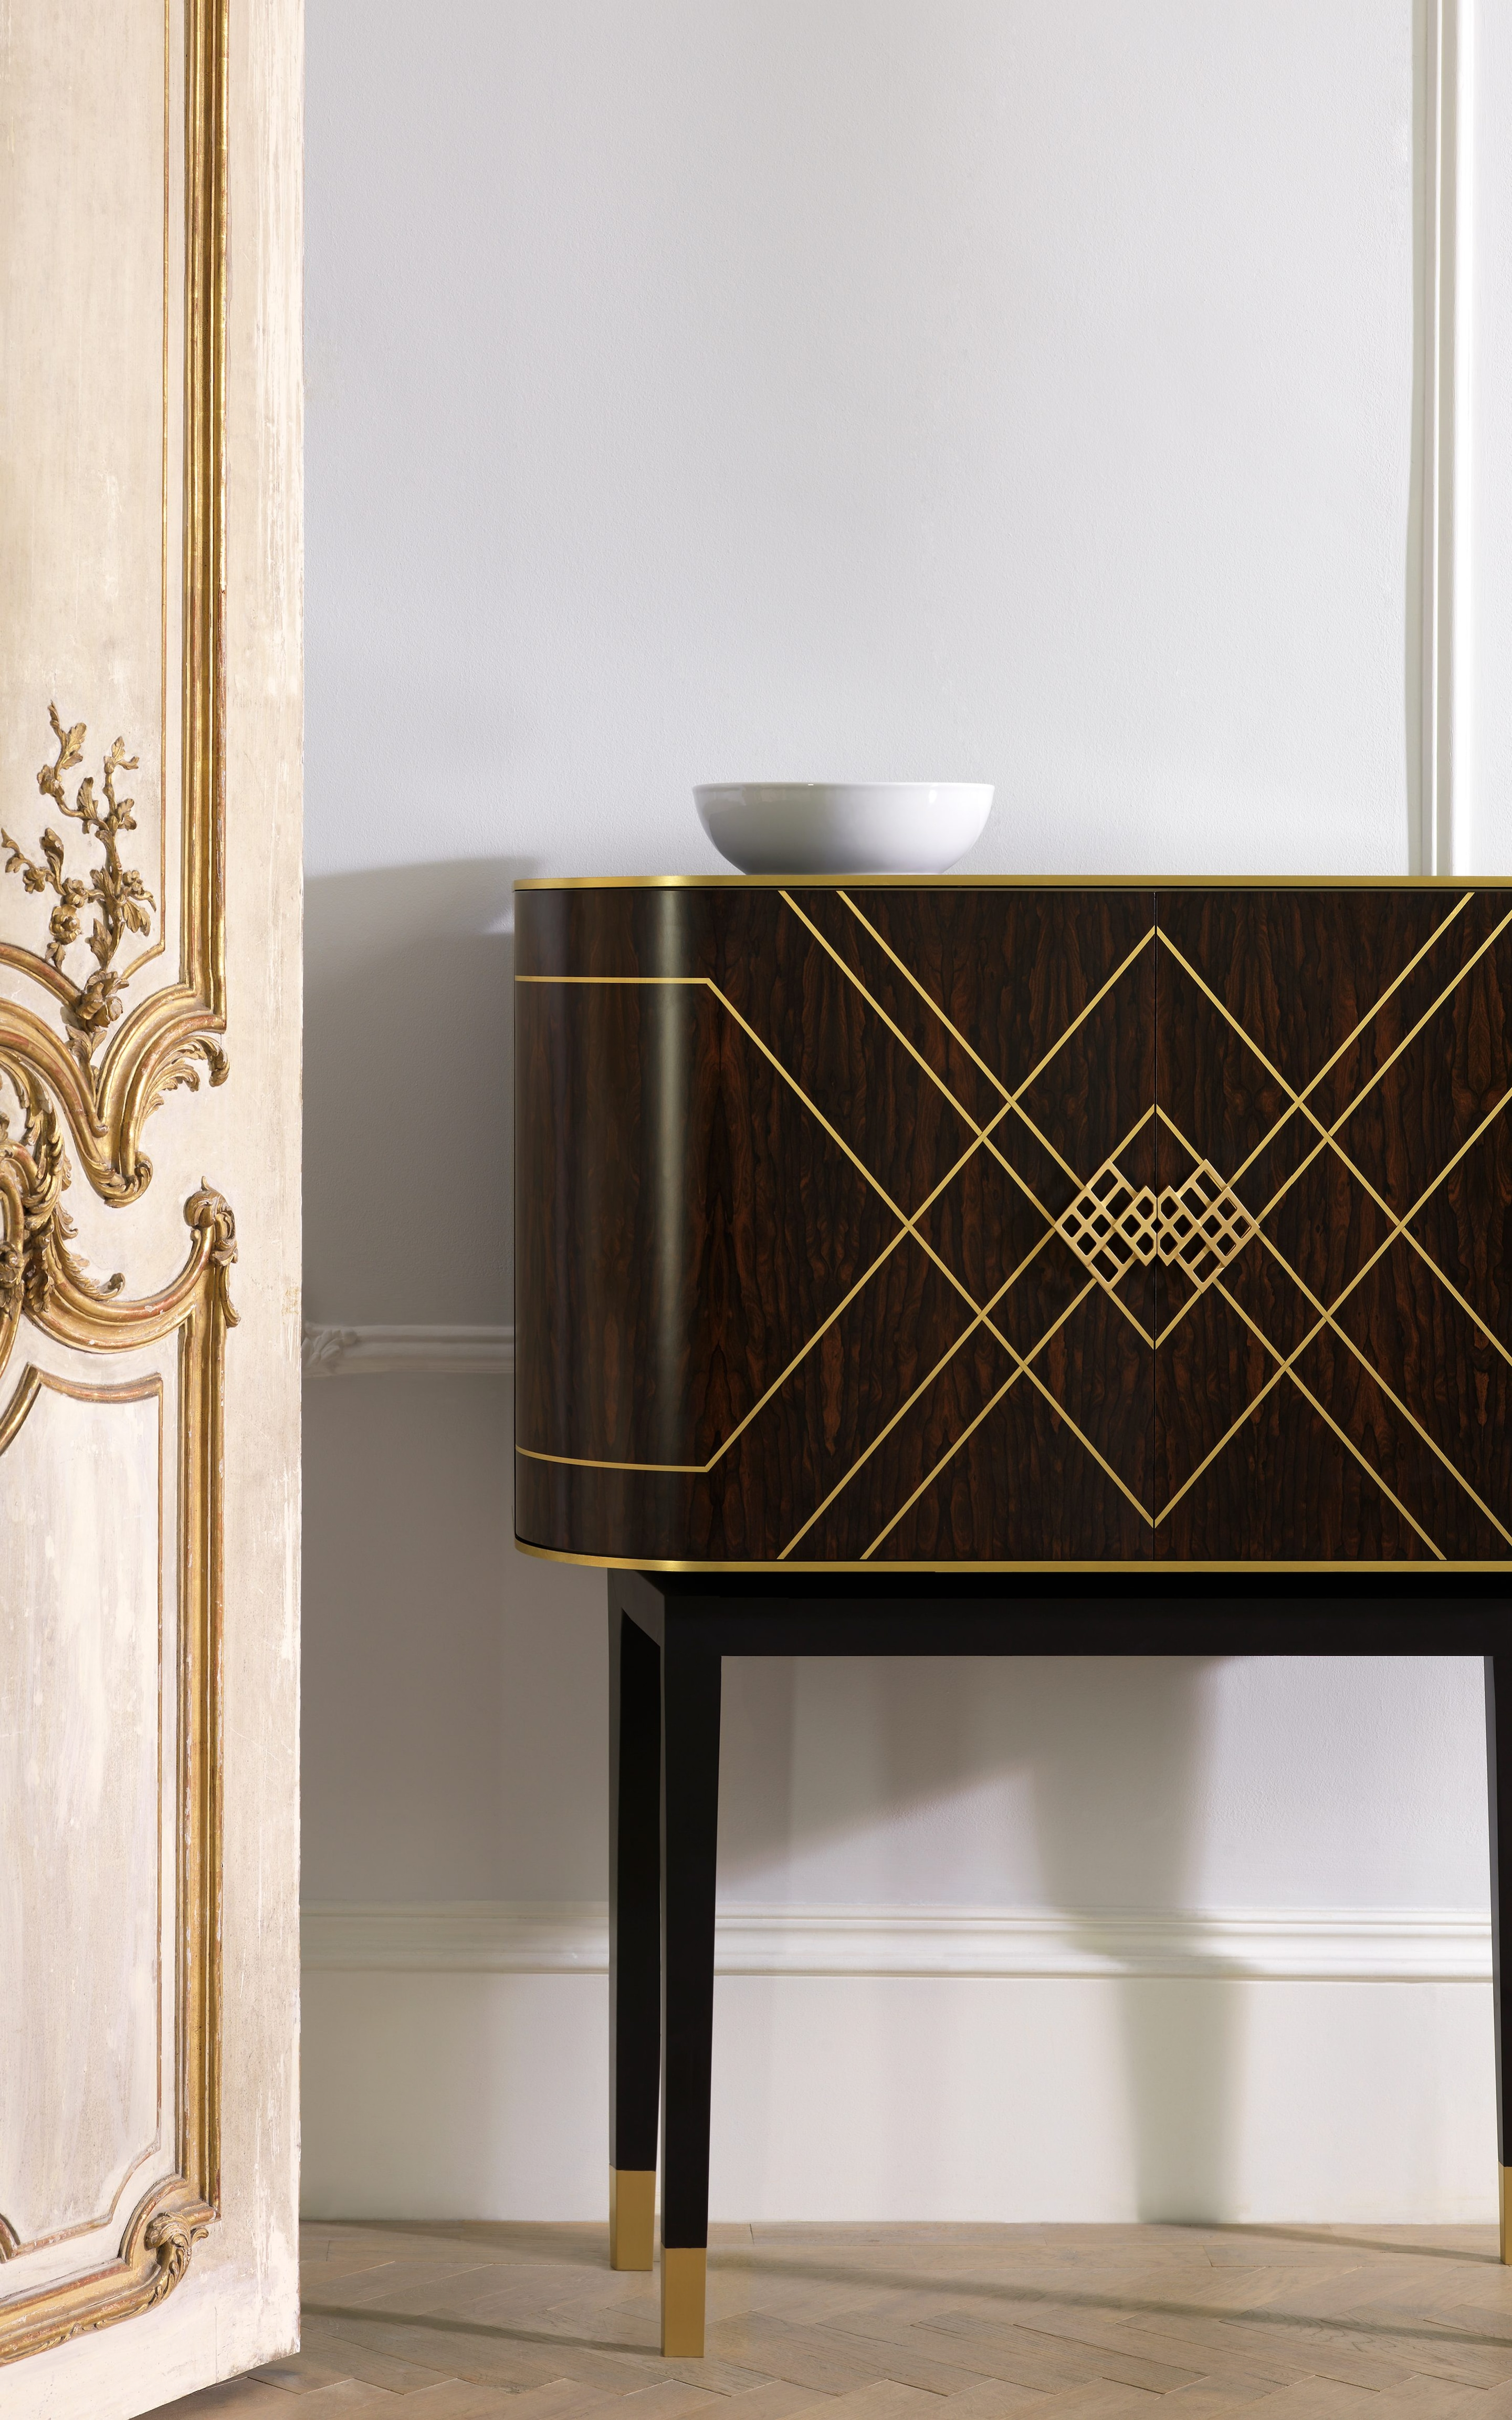 At Home With Harrods The London Department Store Launches